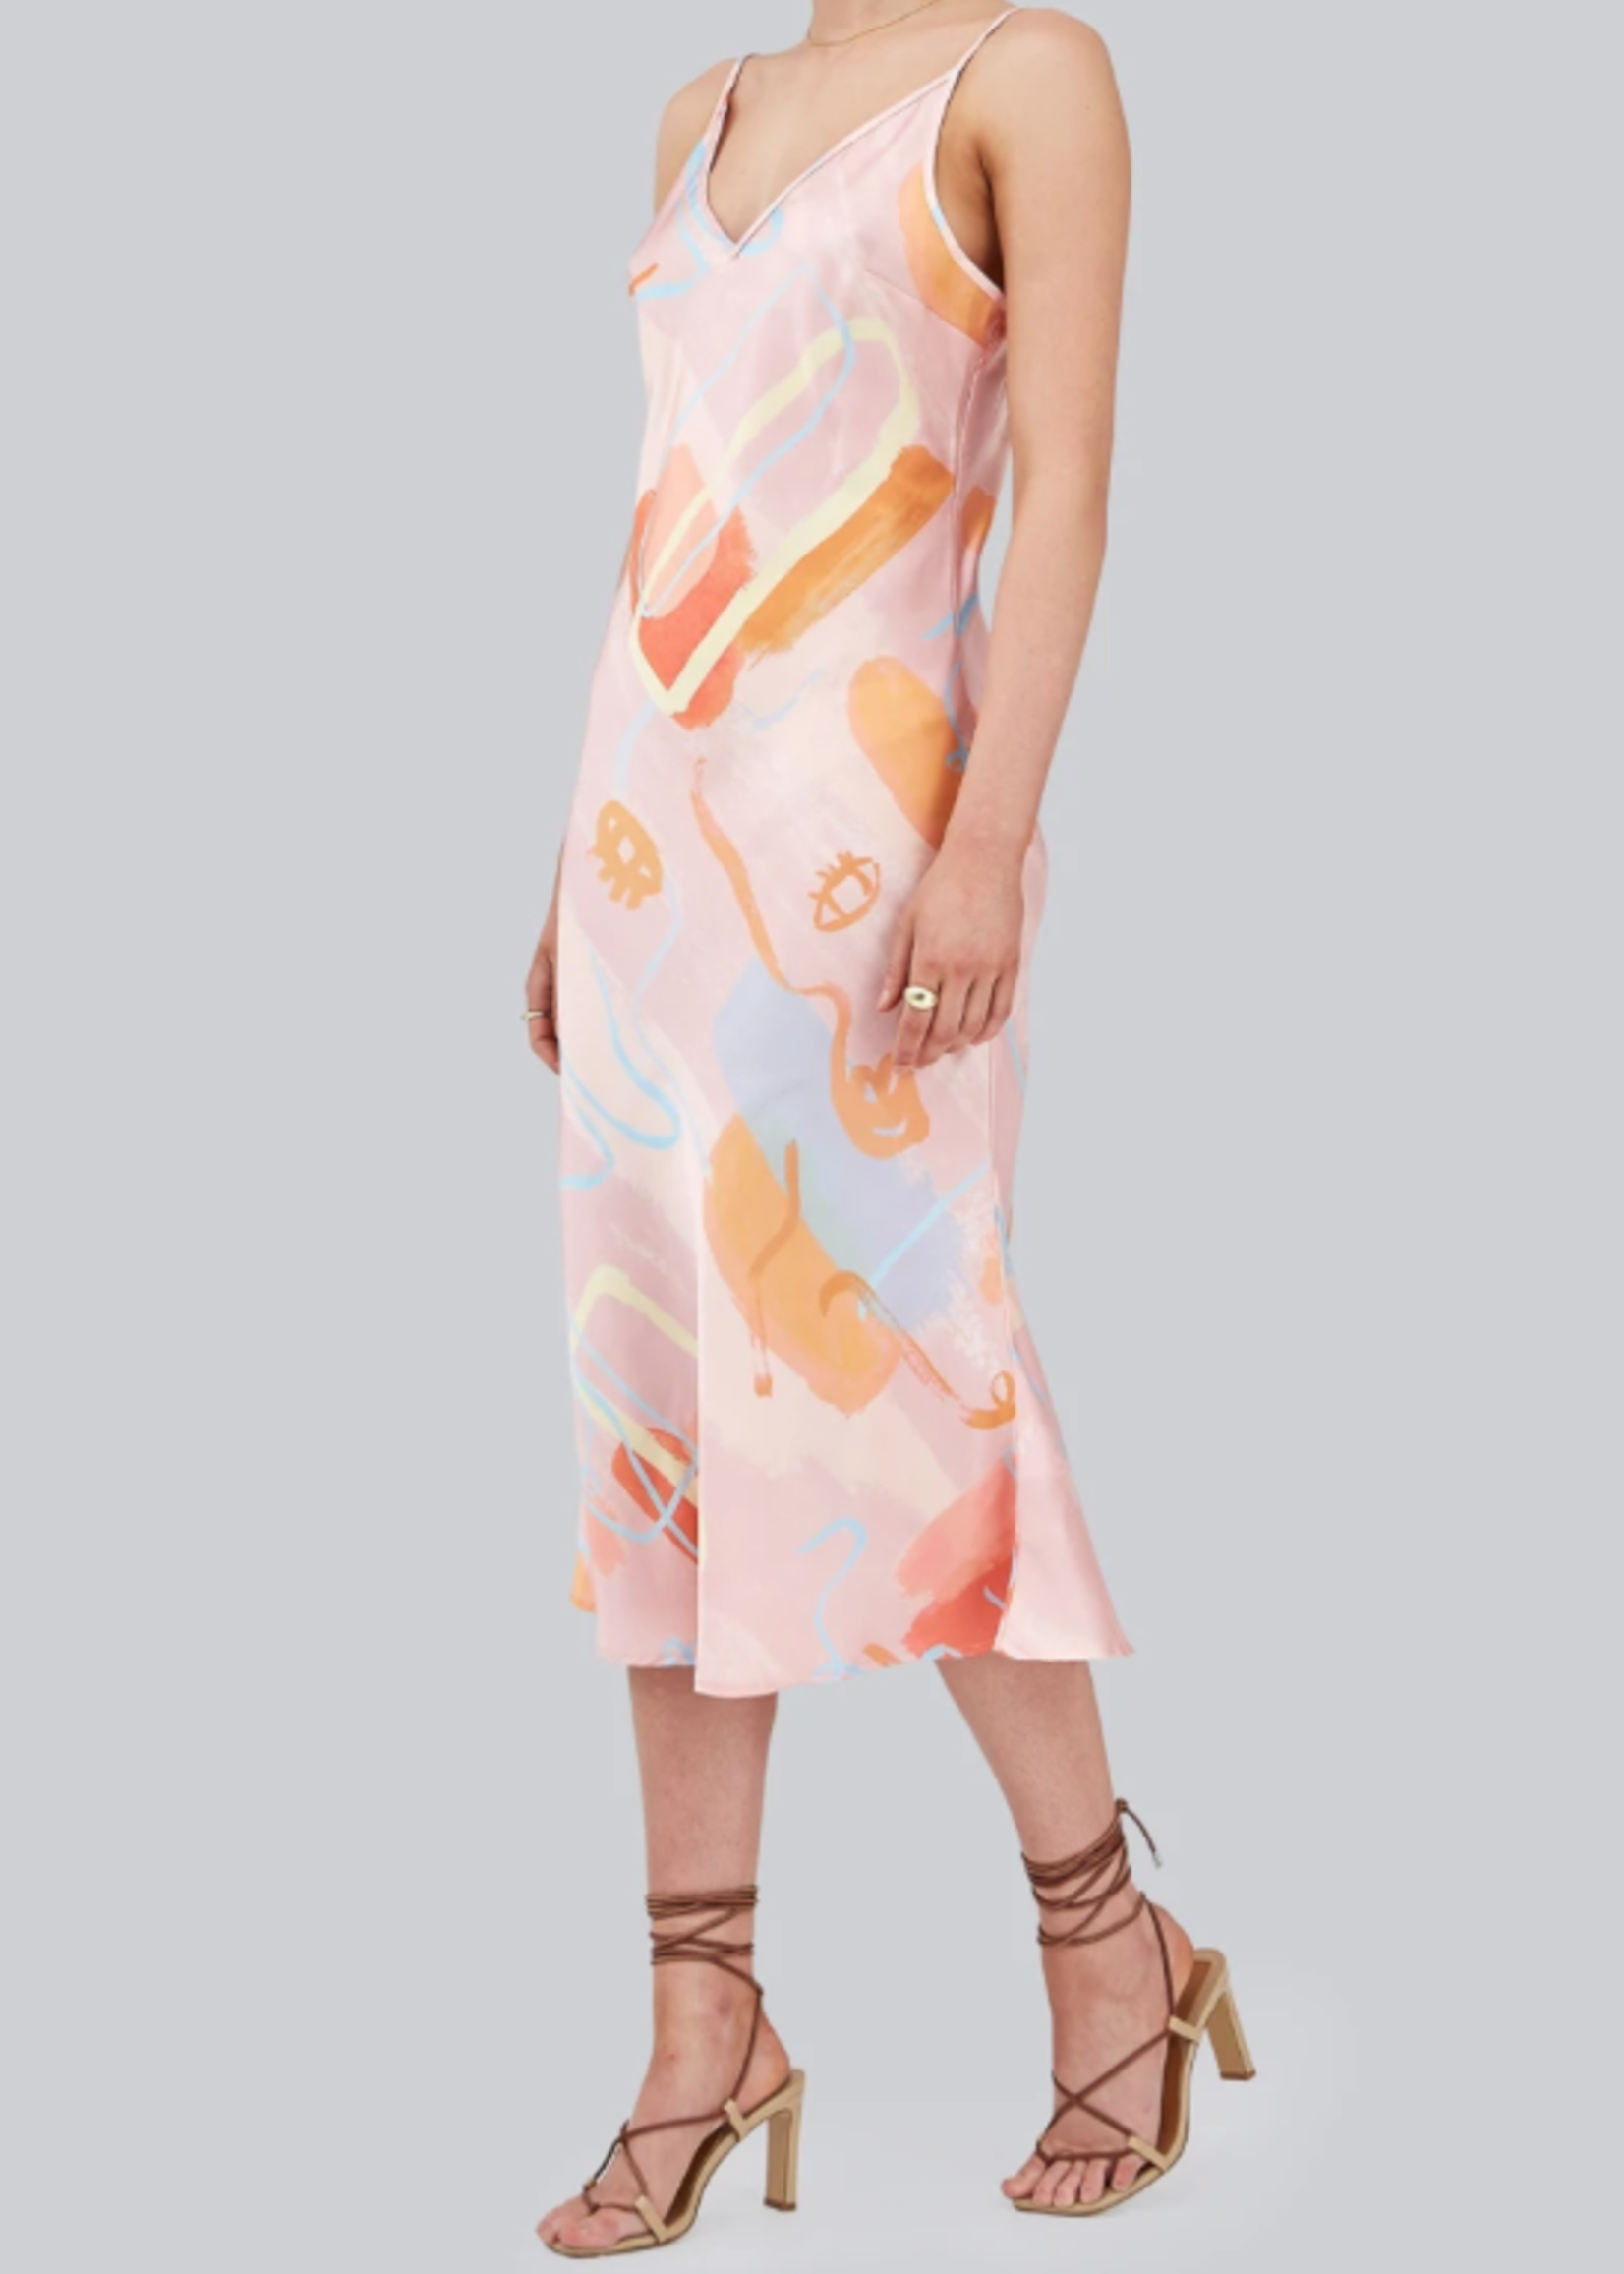 Elitaire Boutique The Collage Dress in Brushstrokes